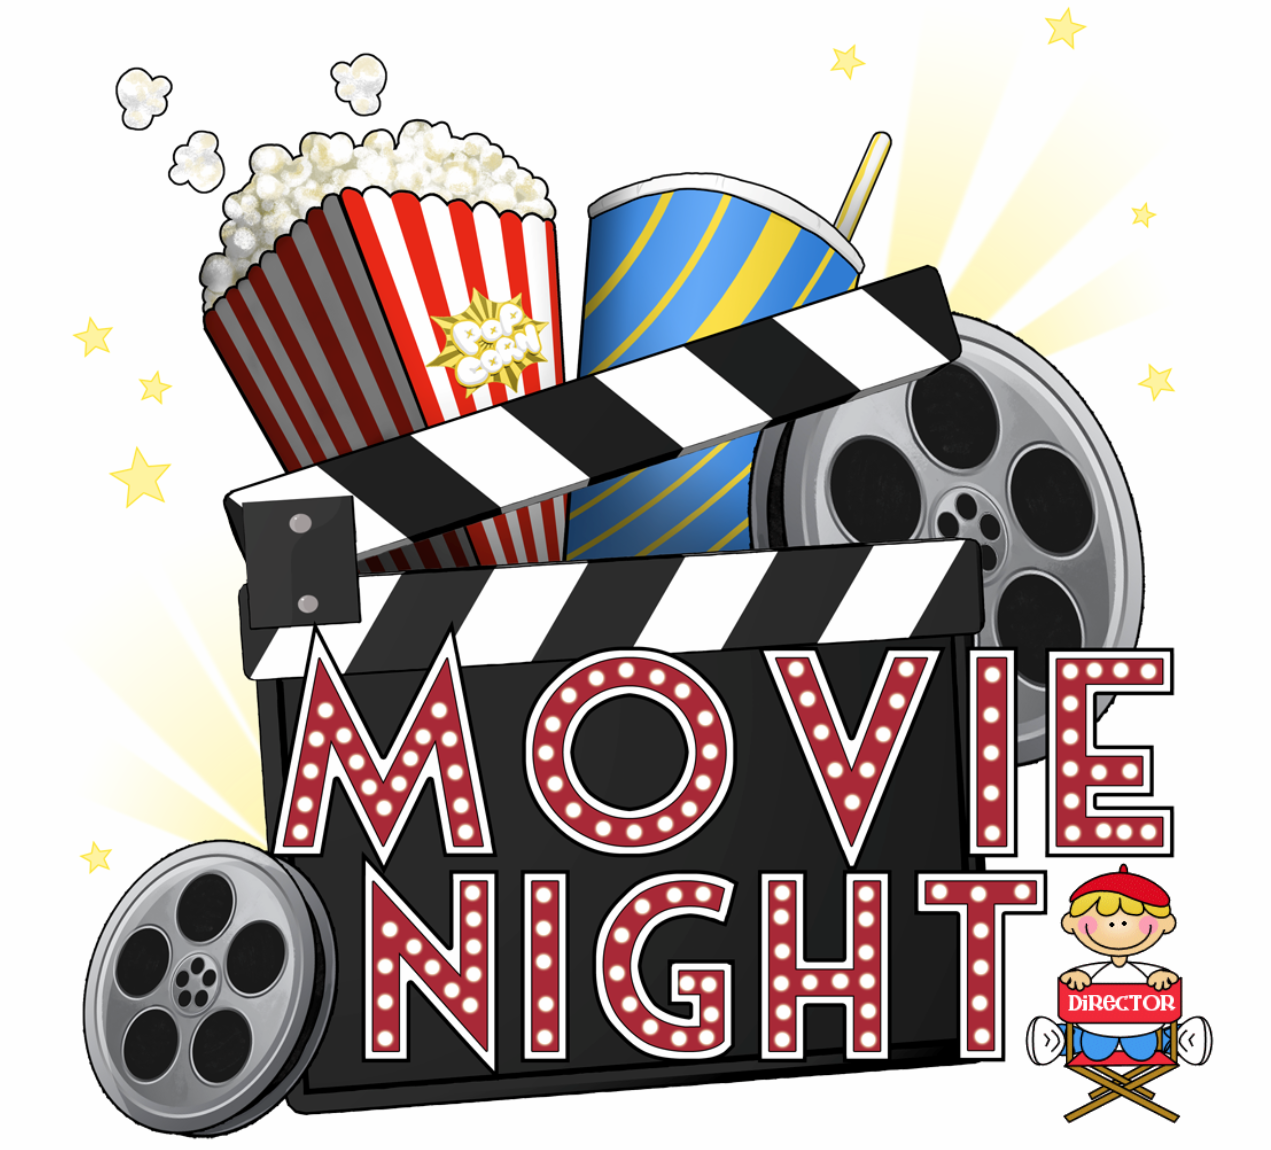 transparent download Youth clipart youth night. Free movie cliparts download